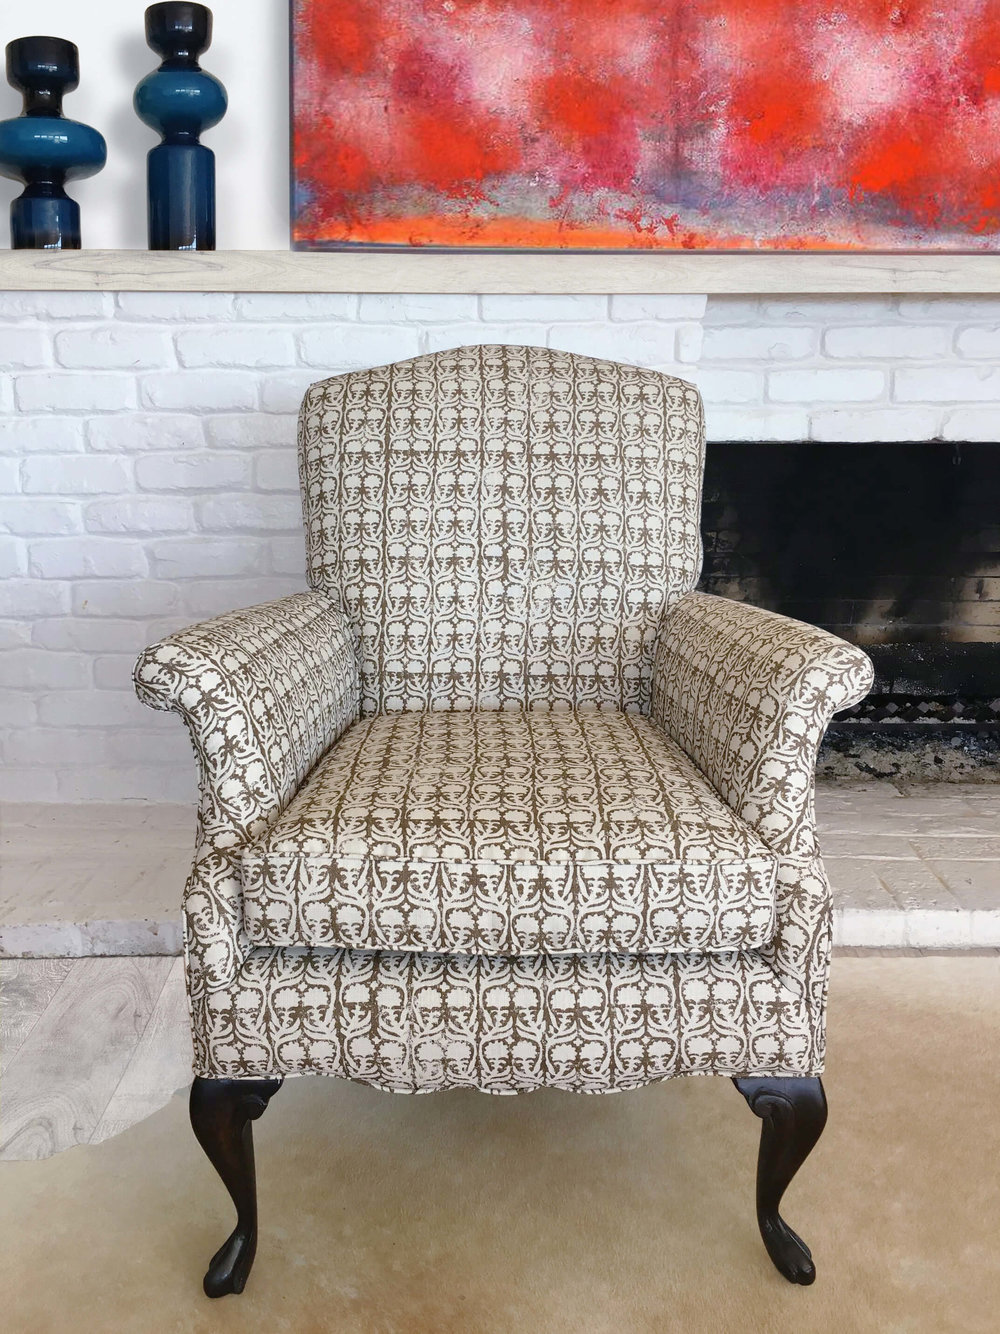 Heirloom chair reupholstered in Penny Morrison Ashok fabric